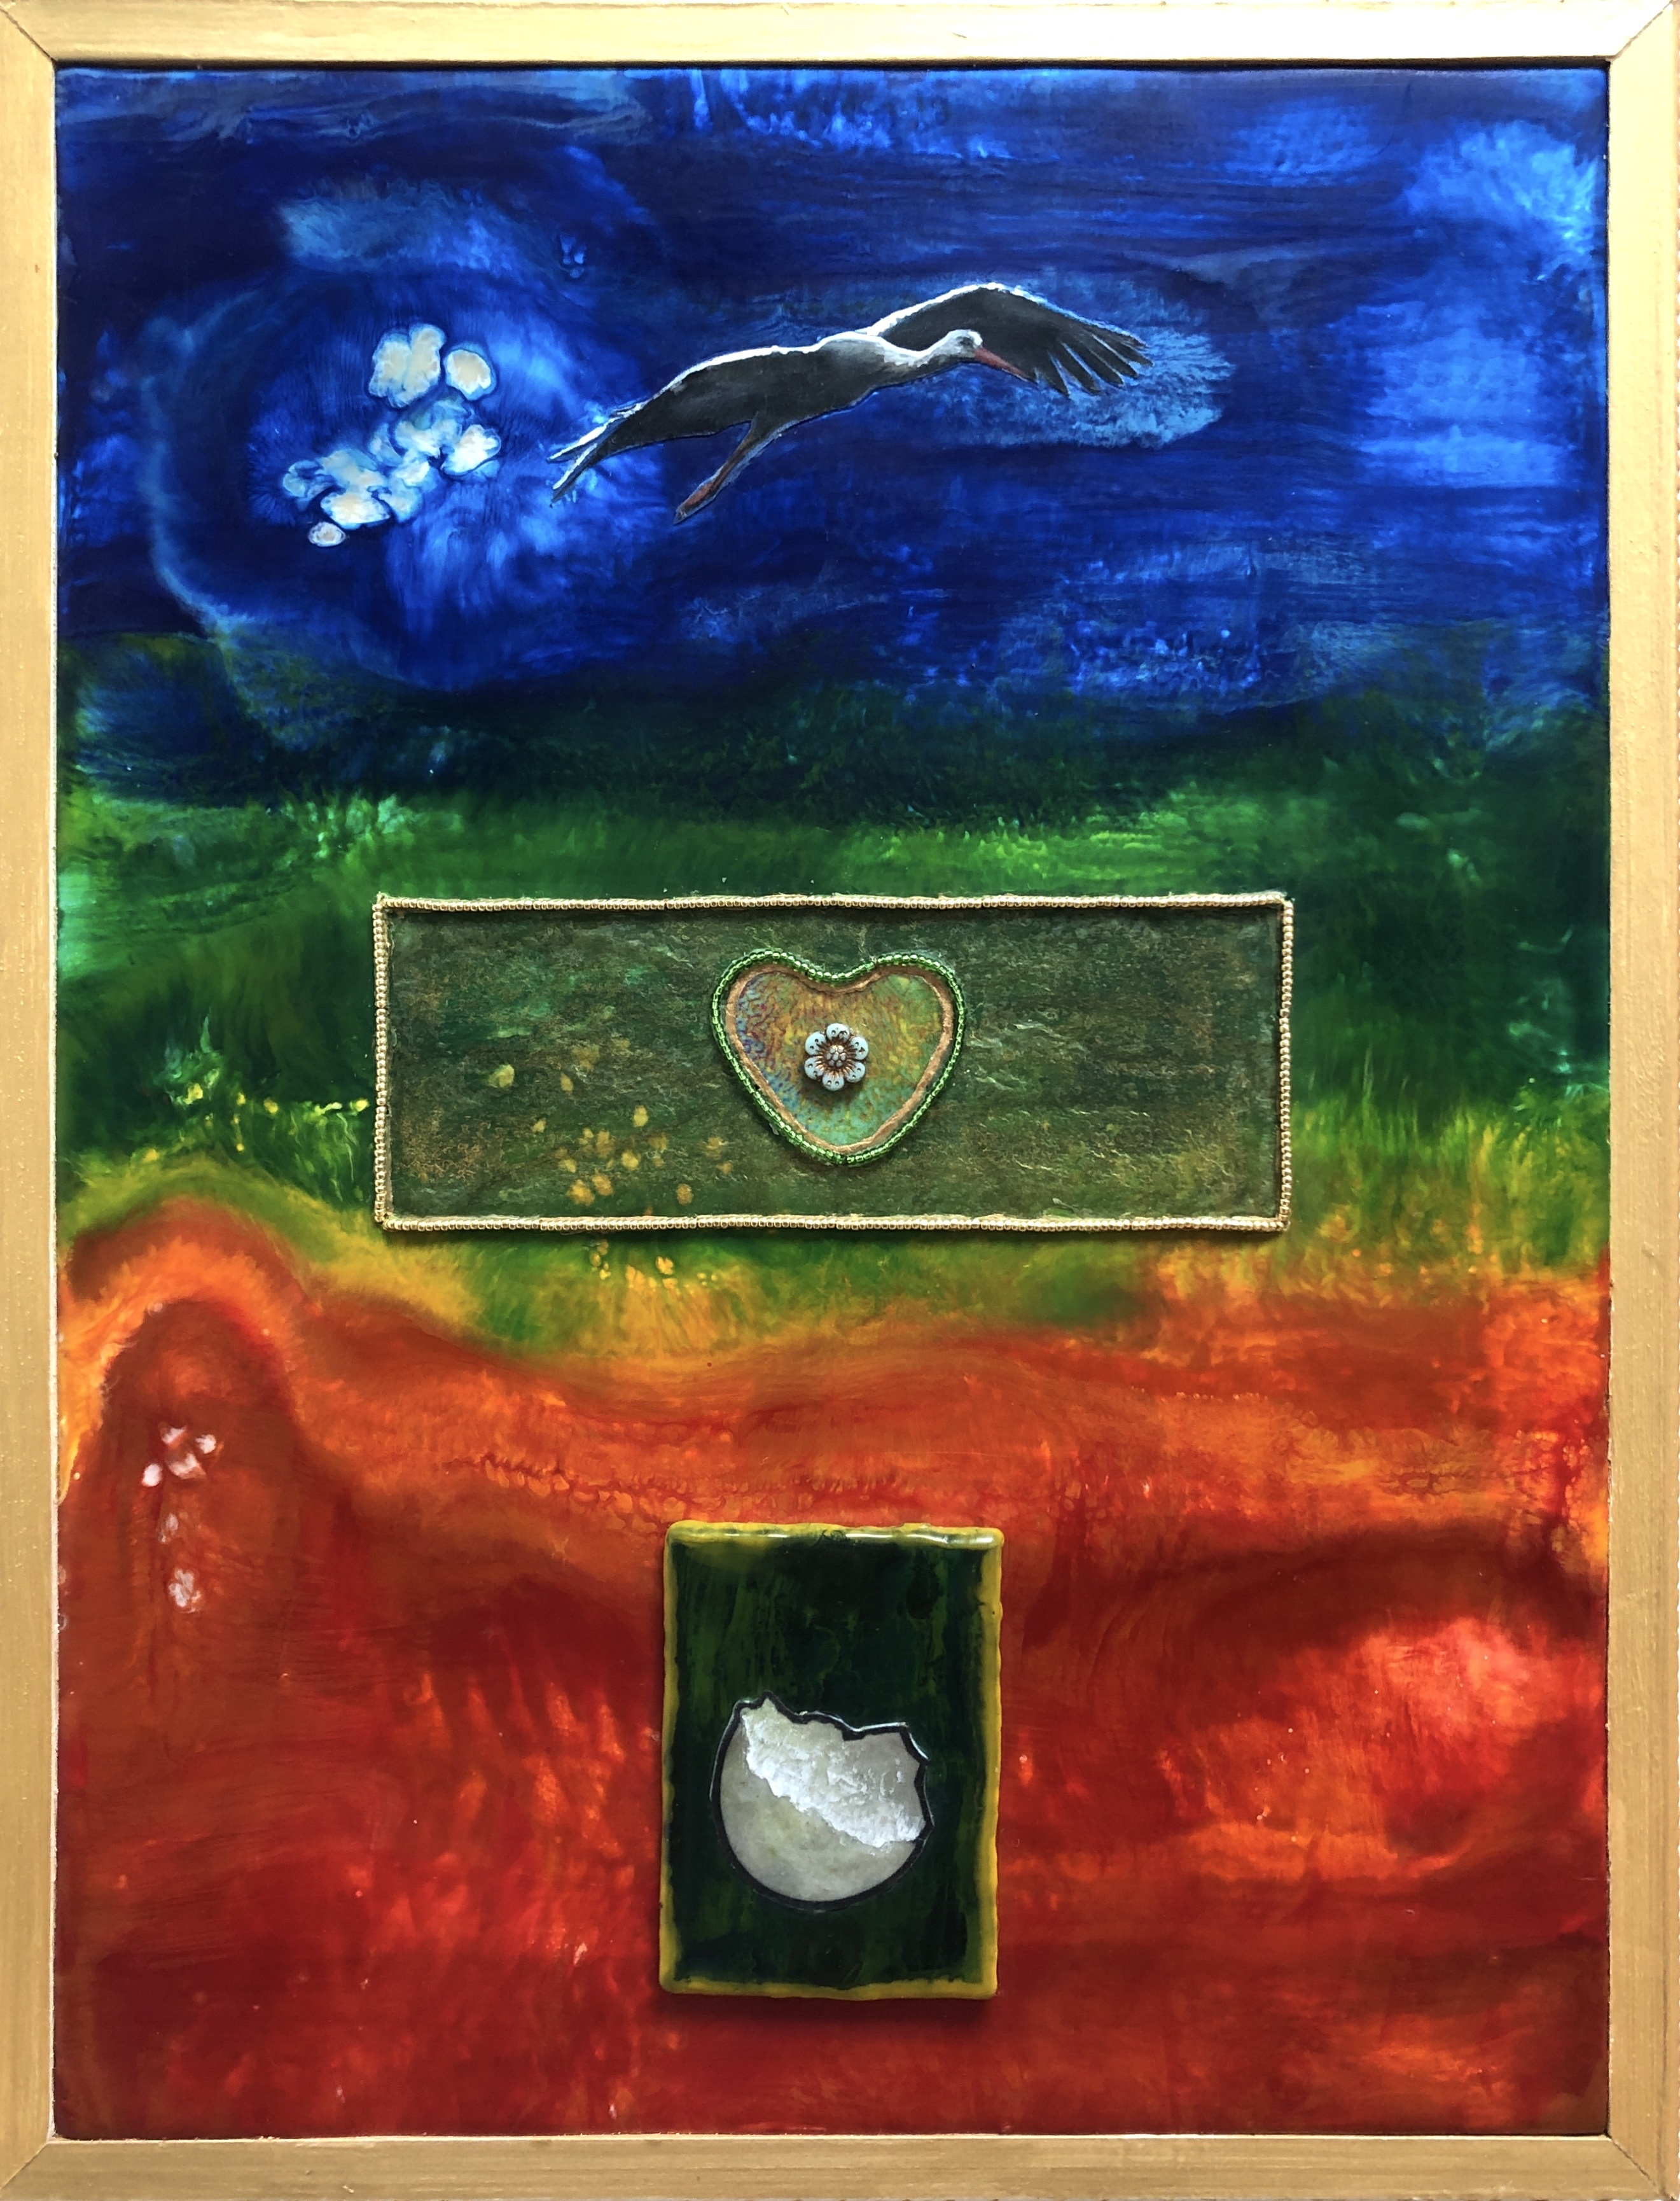 Imagery in the left panel of The Birth of Love at DebbieMathewArt.com